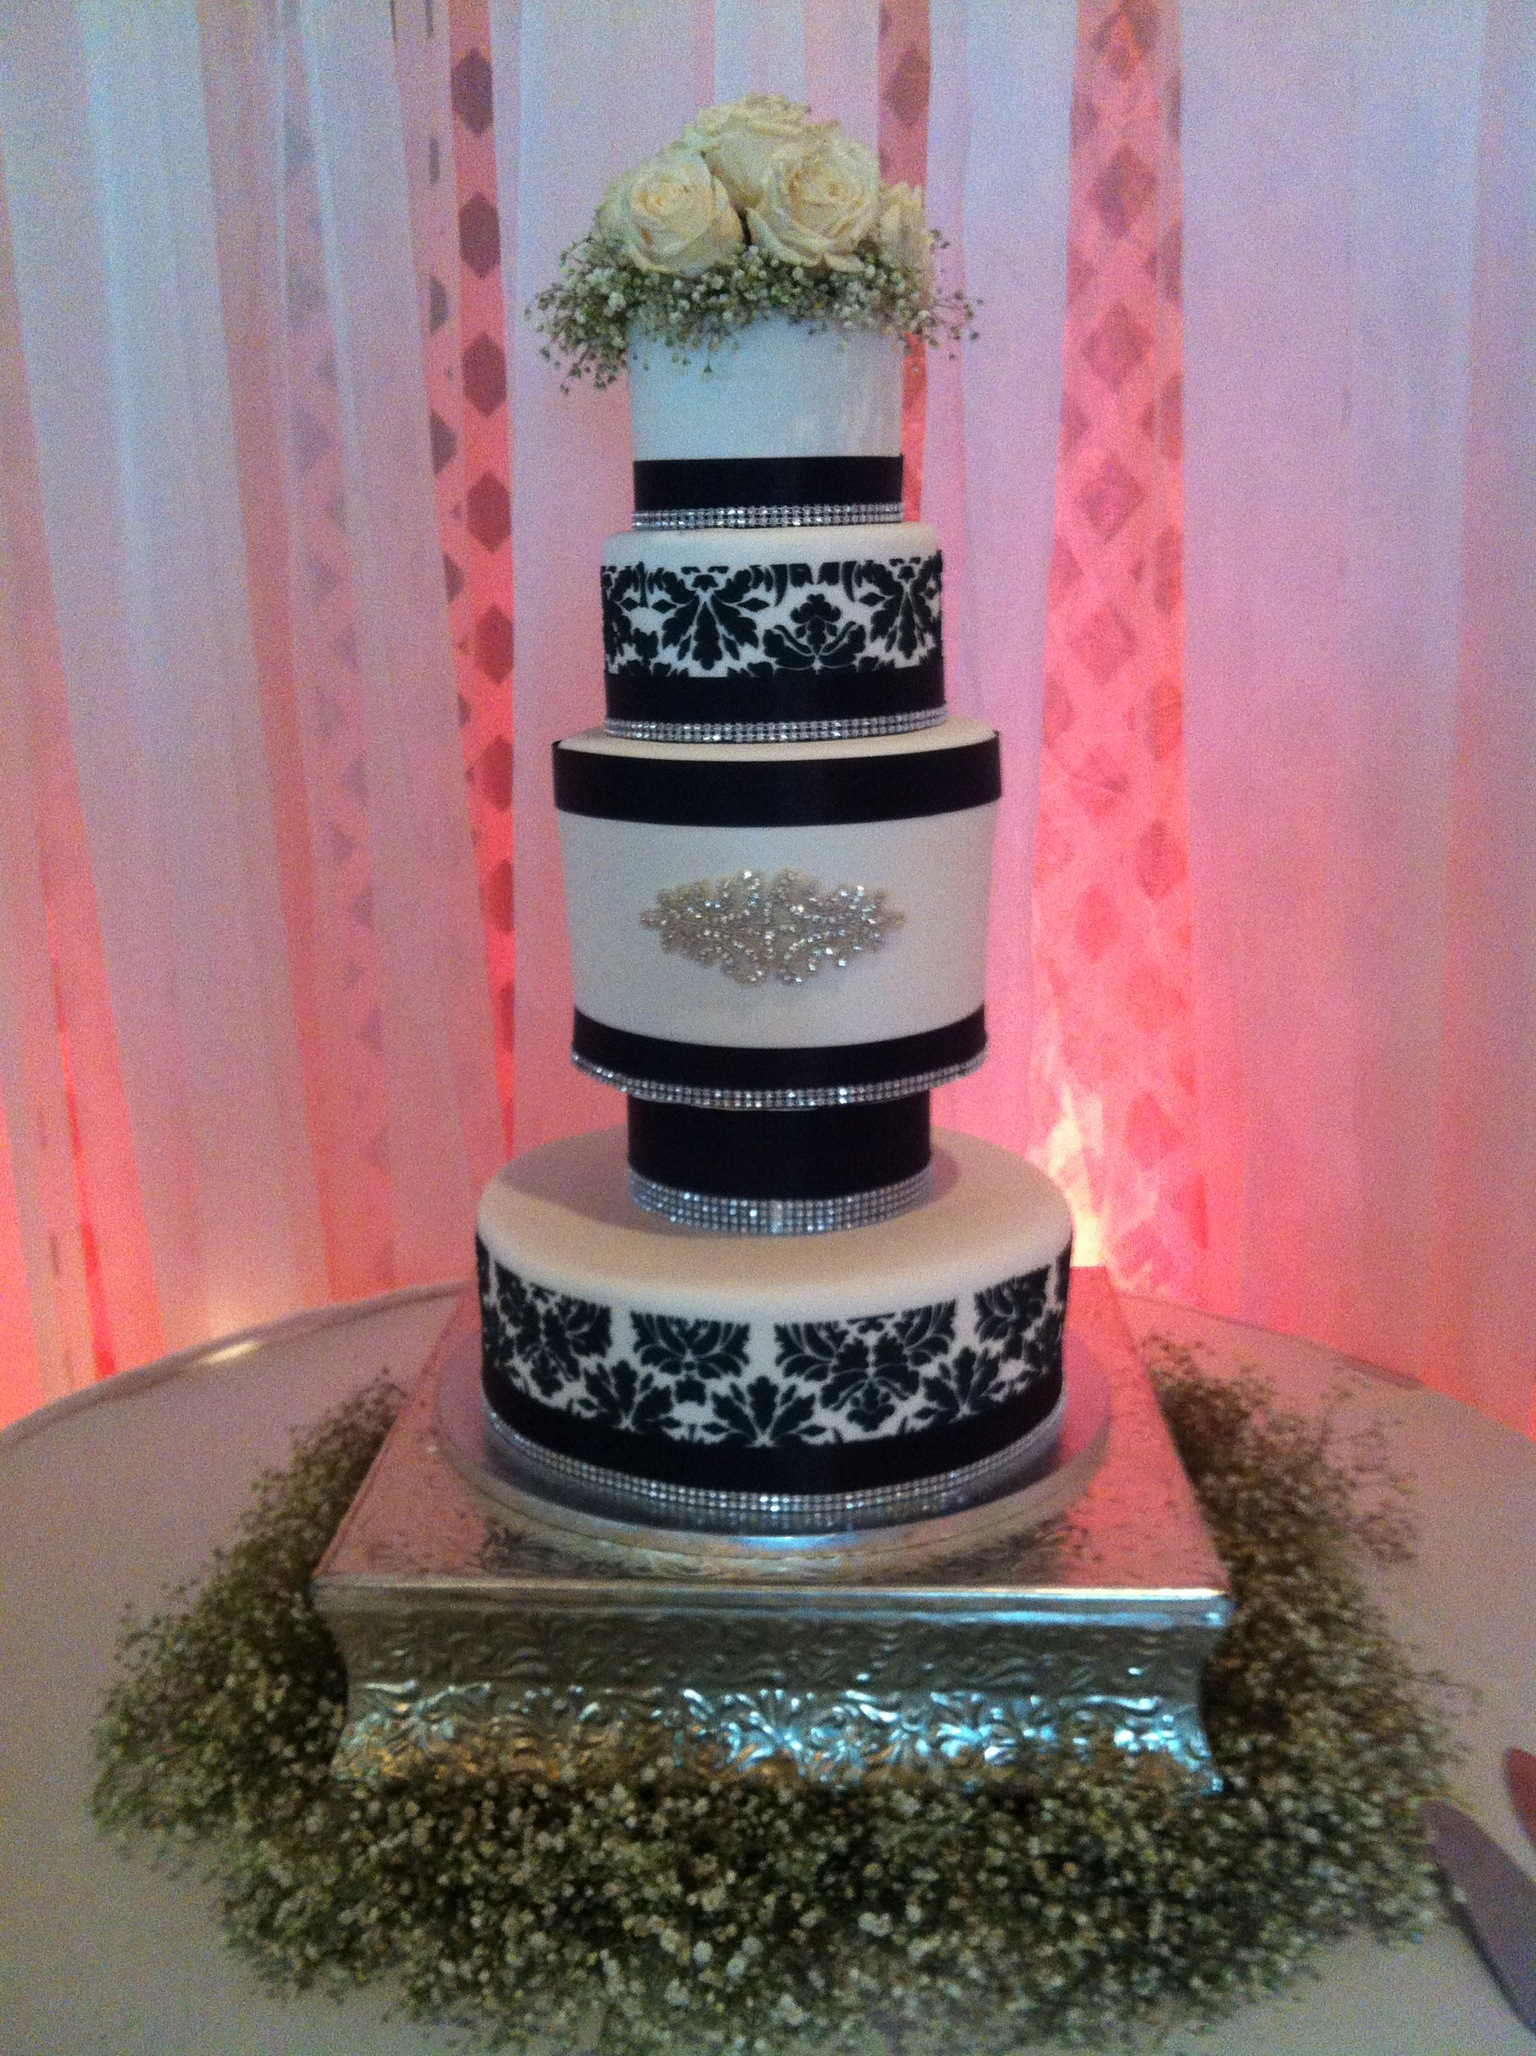 Black and white 5-tier wedding cake